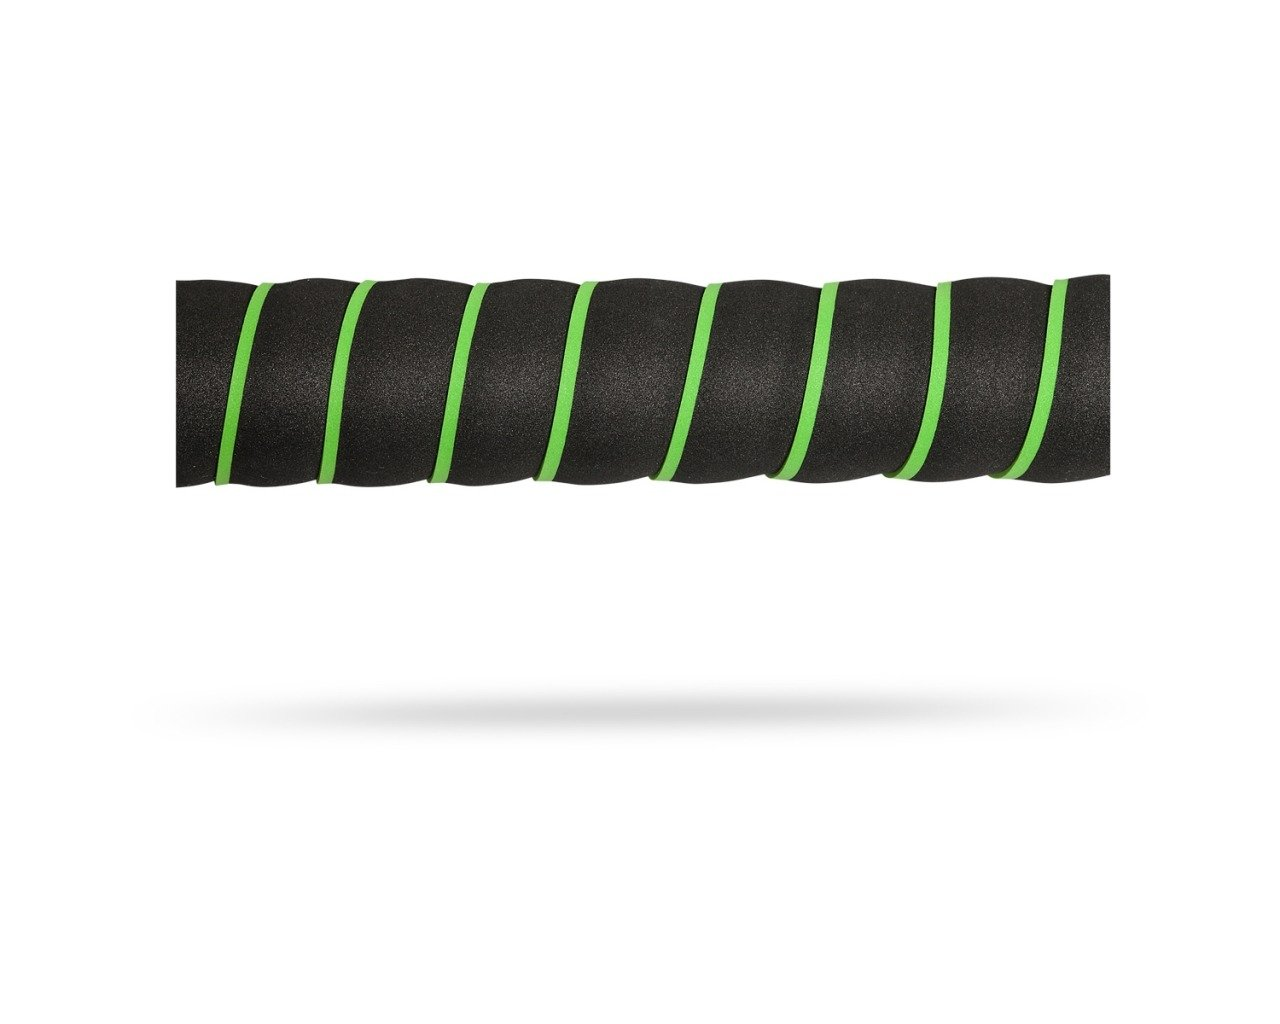 afda984636d Handlebar tape PRO Sport Control black-green Eva - Bike Parts Grips ...